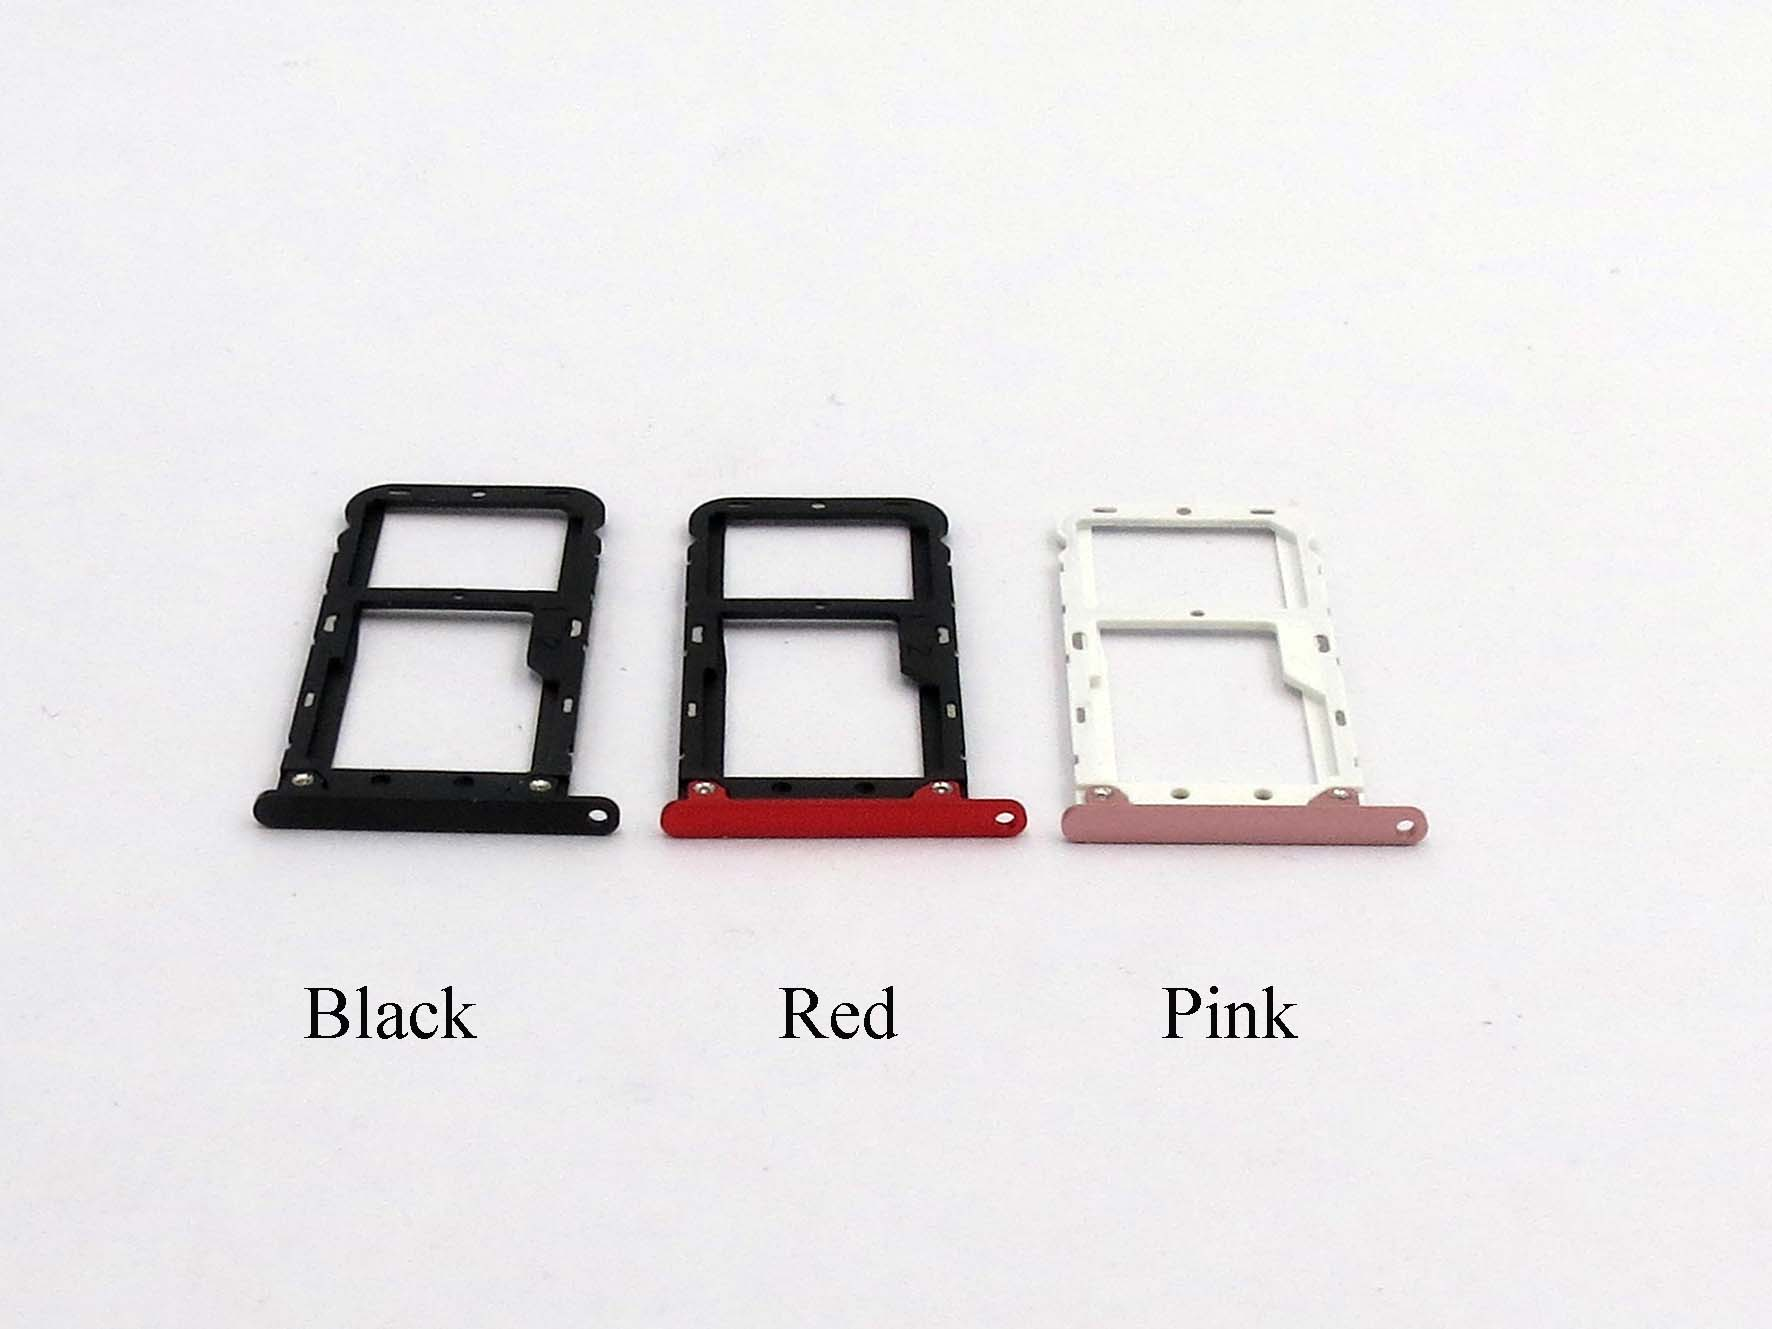 Original Dual Sim Card Slot Tray Holder for xiaomi A1- Black&Red&Pink&Gold